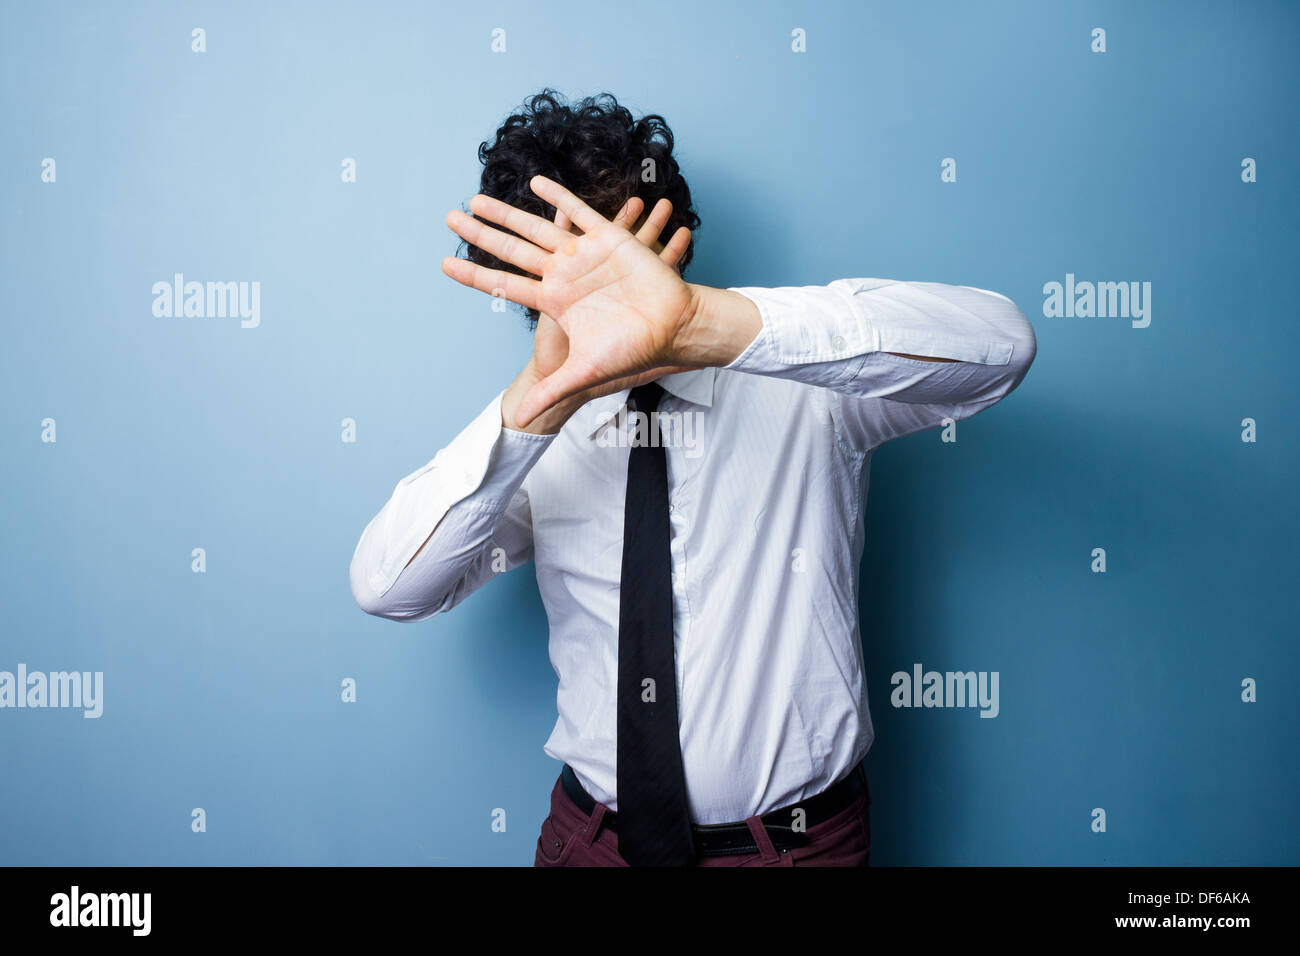 Young man is protecting his face form blinding lights - Stock Image